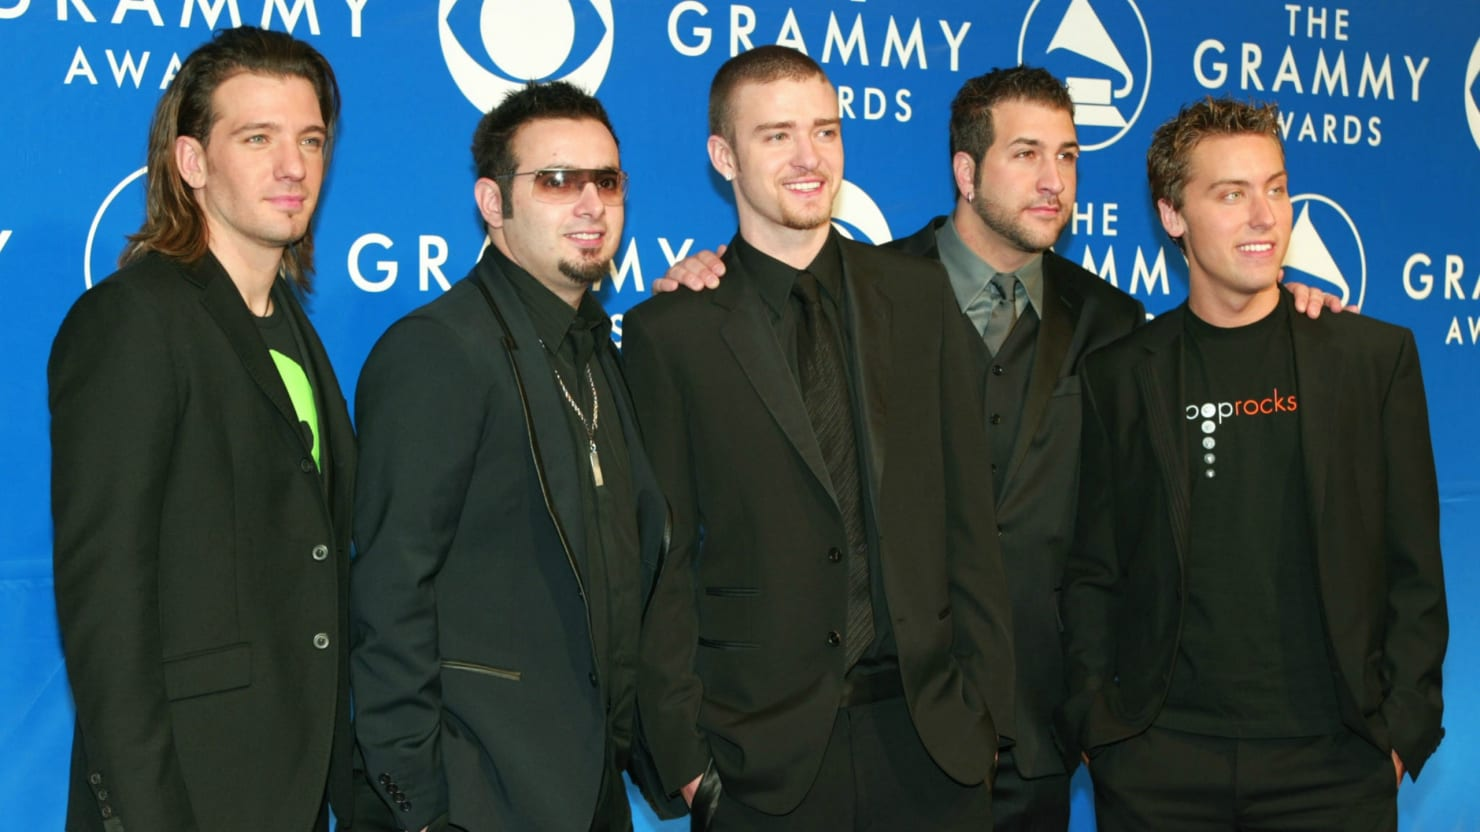 NSYNC: Reunion Comments \'Out of Context\' - The Daily Beast